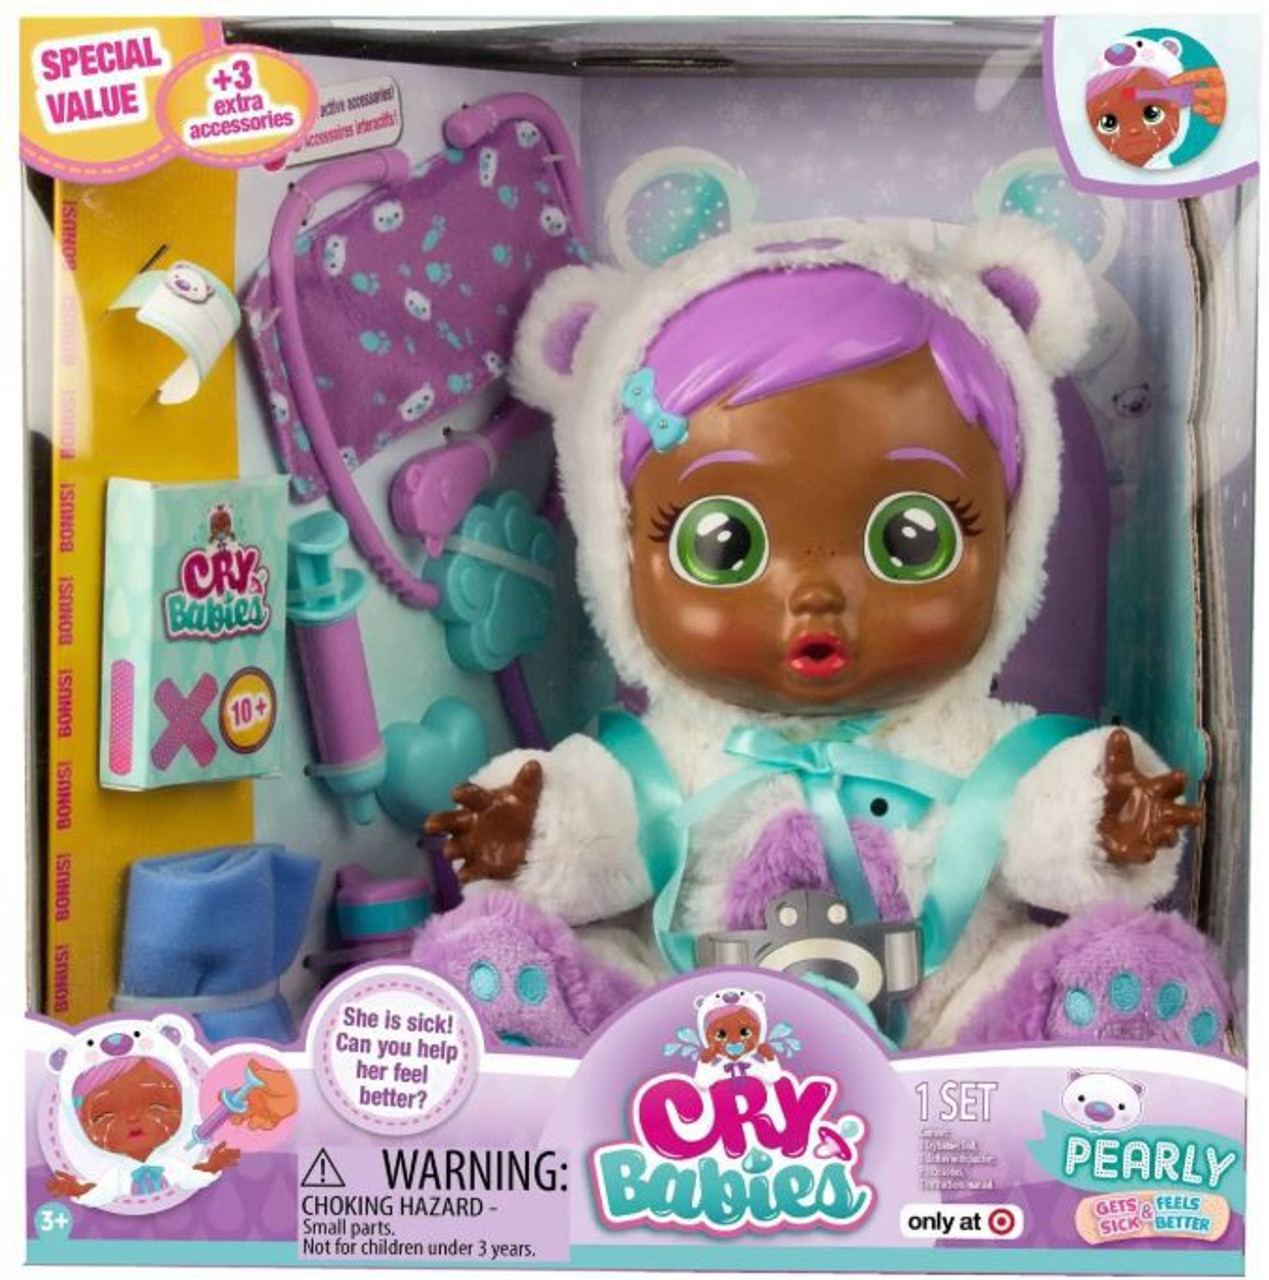 Cry Babies Pearly Exclusive Deluxe Doll 3 Extra Accessories Imc Toys Toywiz